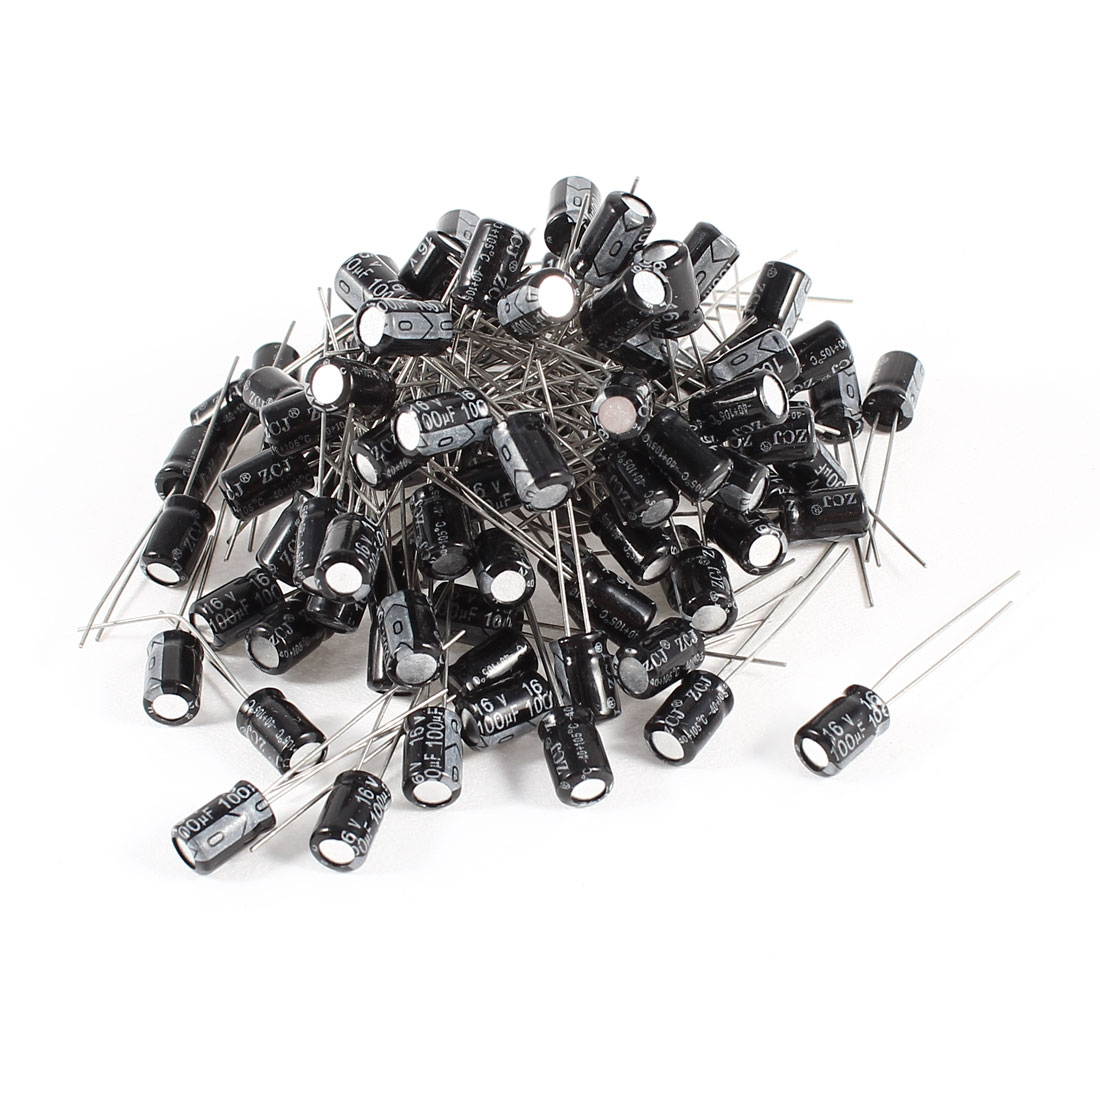 100 Pcs 100uF 16V Radial Leads Aluminum Electrolytic Capacitors 5x7mm